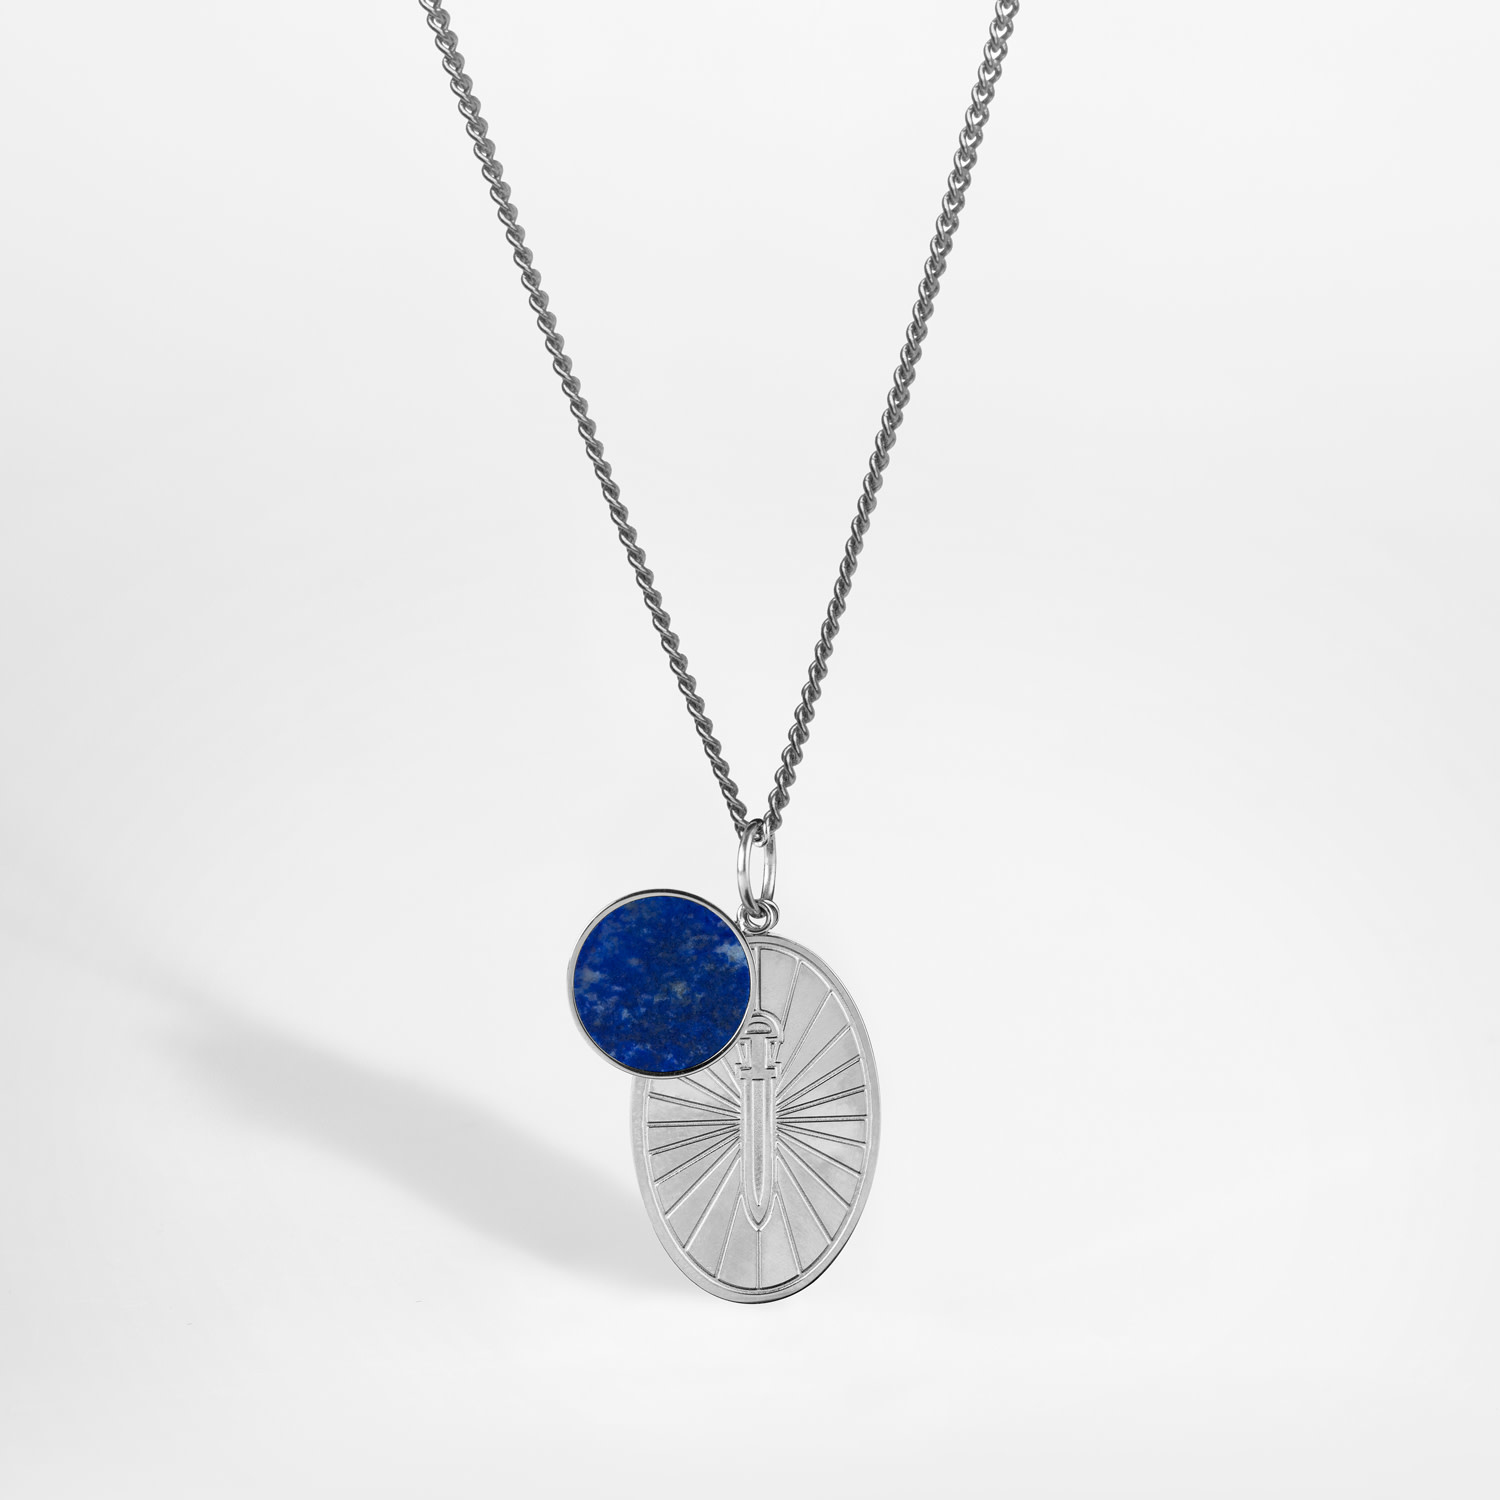 Northern Legacy Northern Legacy Gungnir-Lapis Necklace Silver/Blue